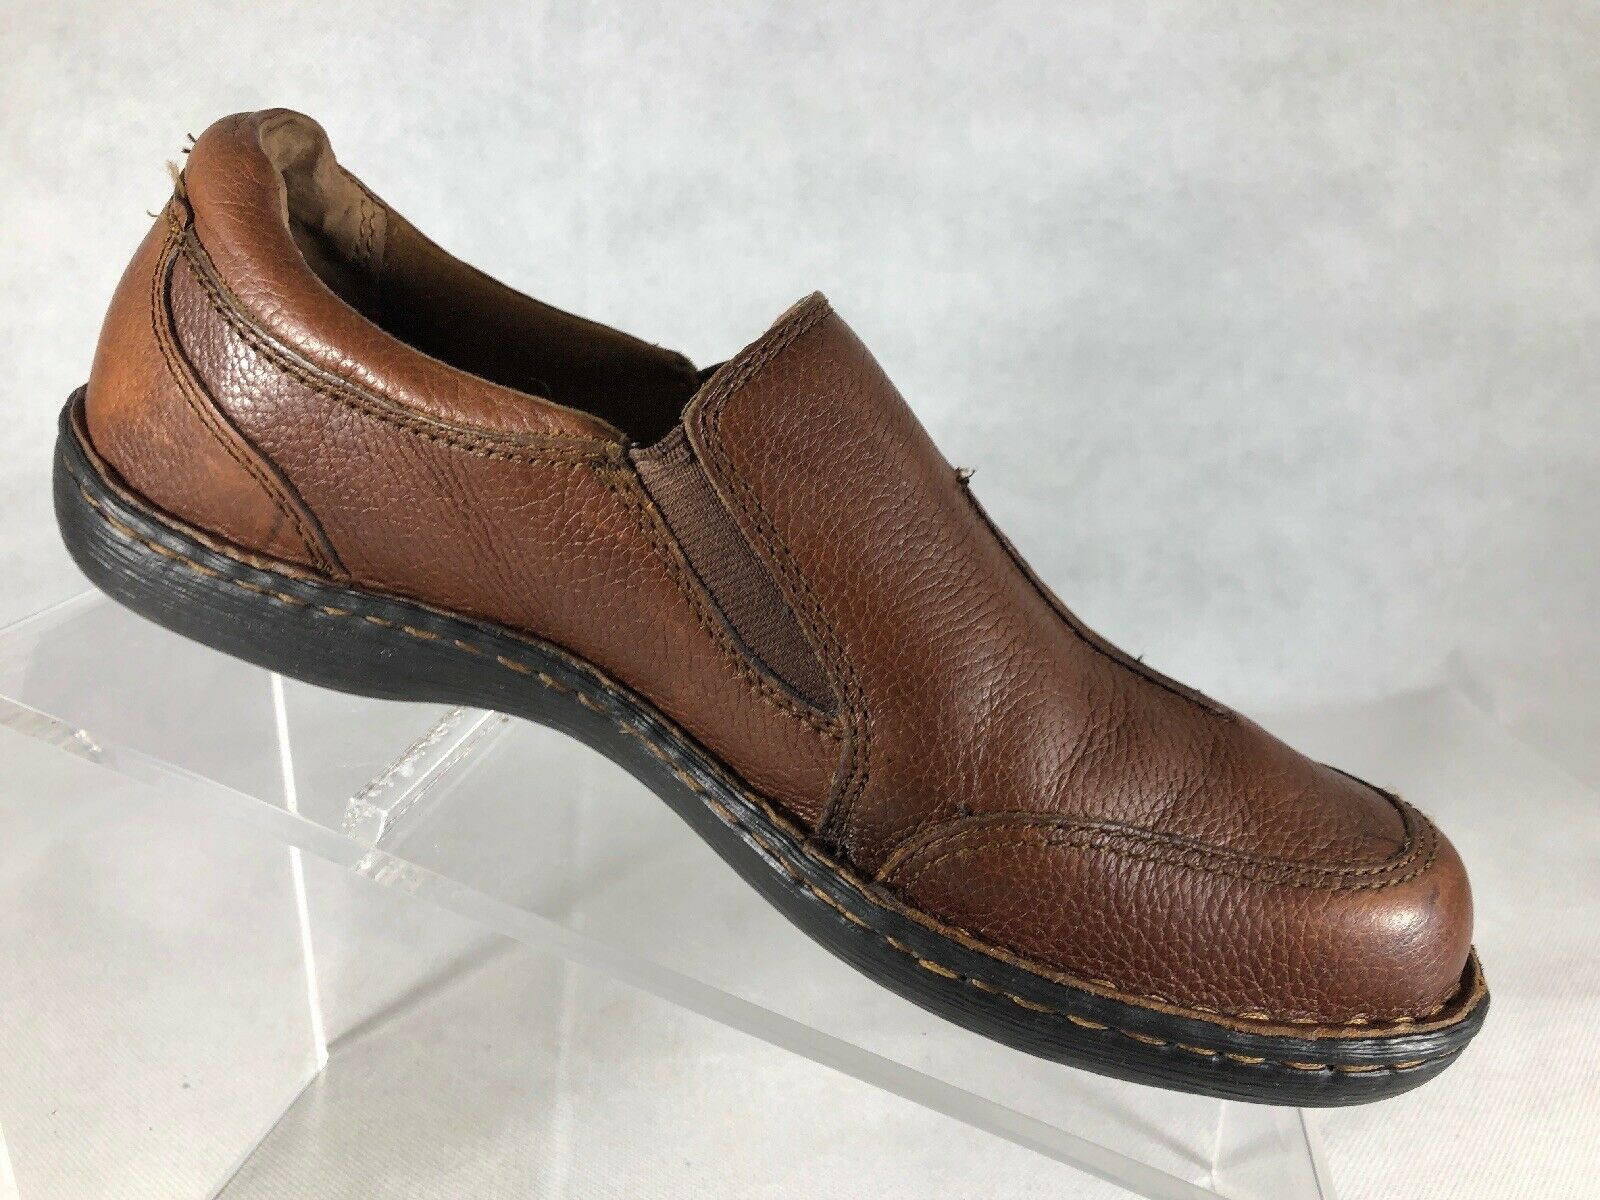 BOC damen's braun Leather Loafers Loafers Loafers 8 39 M. Sr8 9a55bd